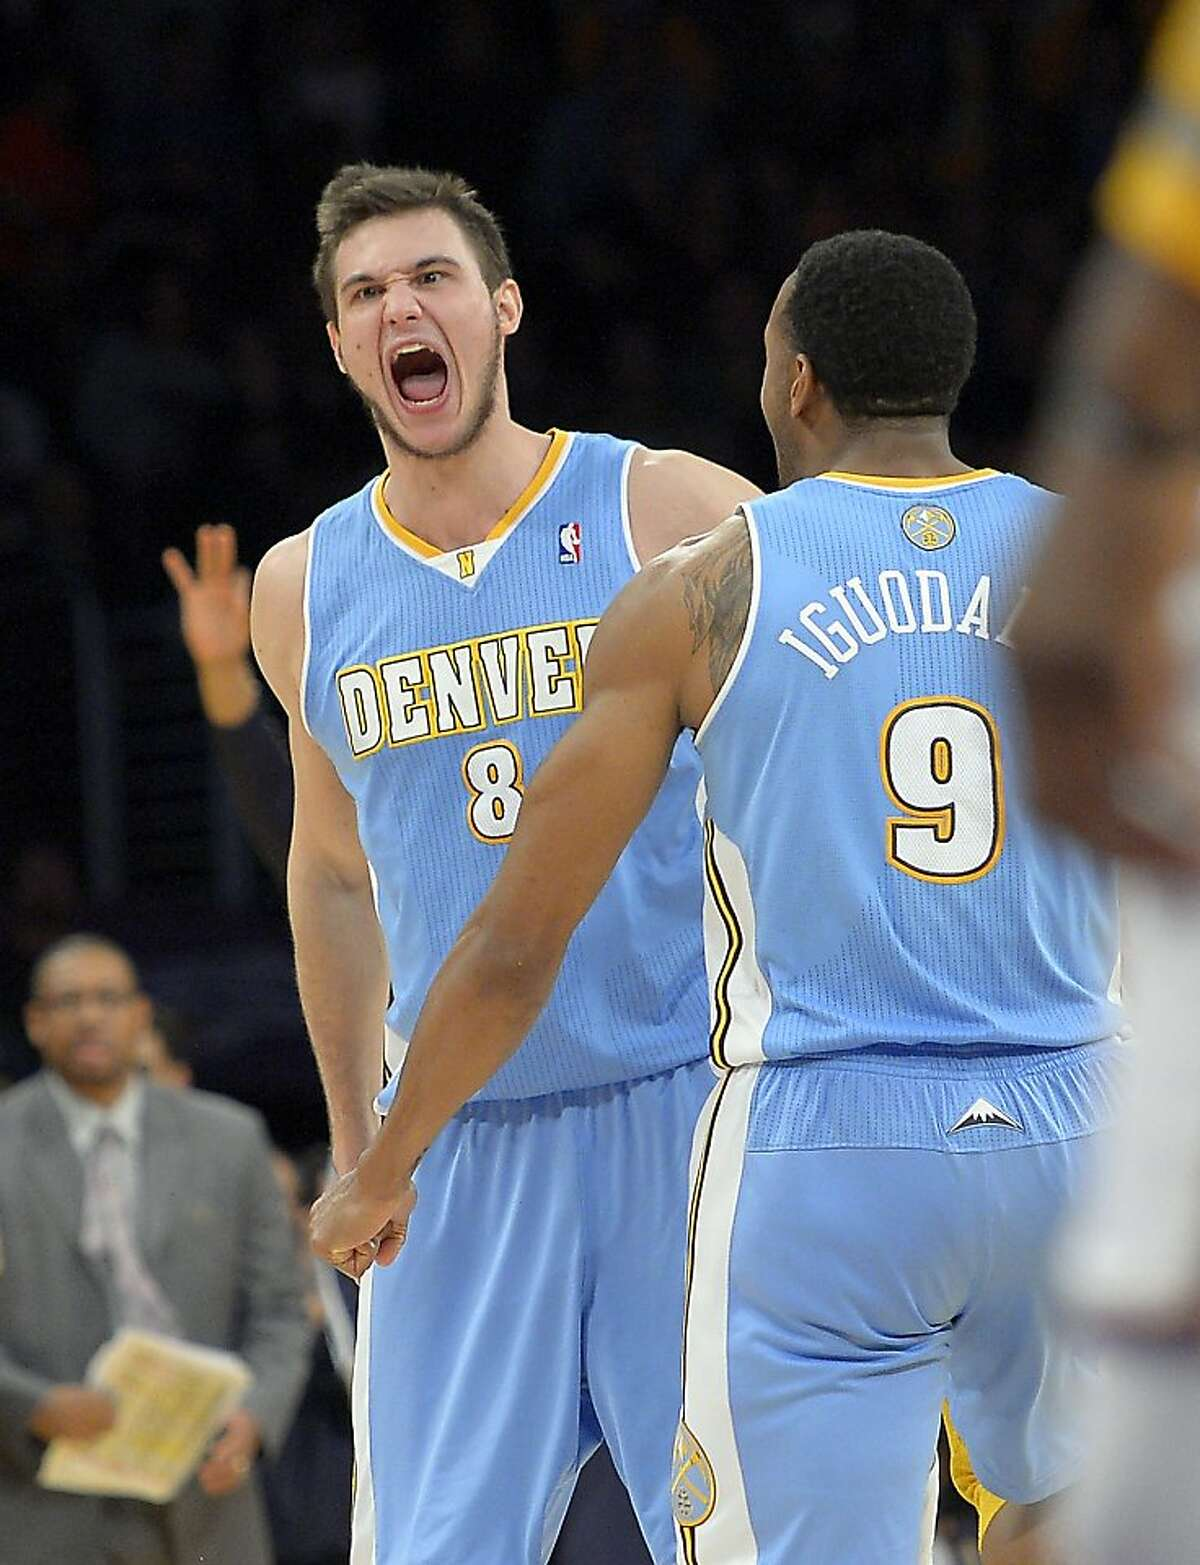 Denver Nuggets forward Danilo Gallinari, left, of Italy, celebrates with teammate Andre Iguodala after hitting a three point shot late in the second half of their NBA basketball game against the Los Angeles Lakers, Sunday, Jan. 6, 2013, in Los Angeles. The Nuggets won 112-105. (AP Photo/Mark J. Terrill)